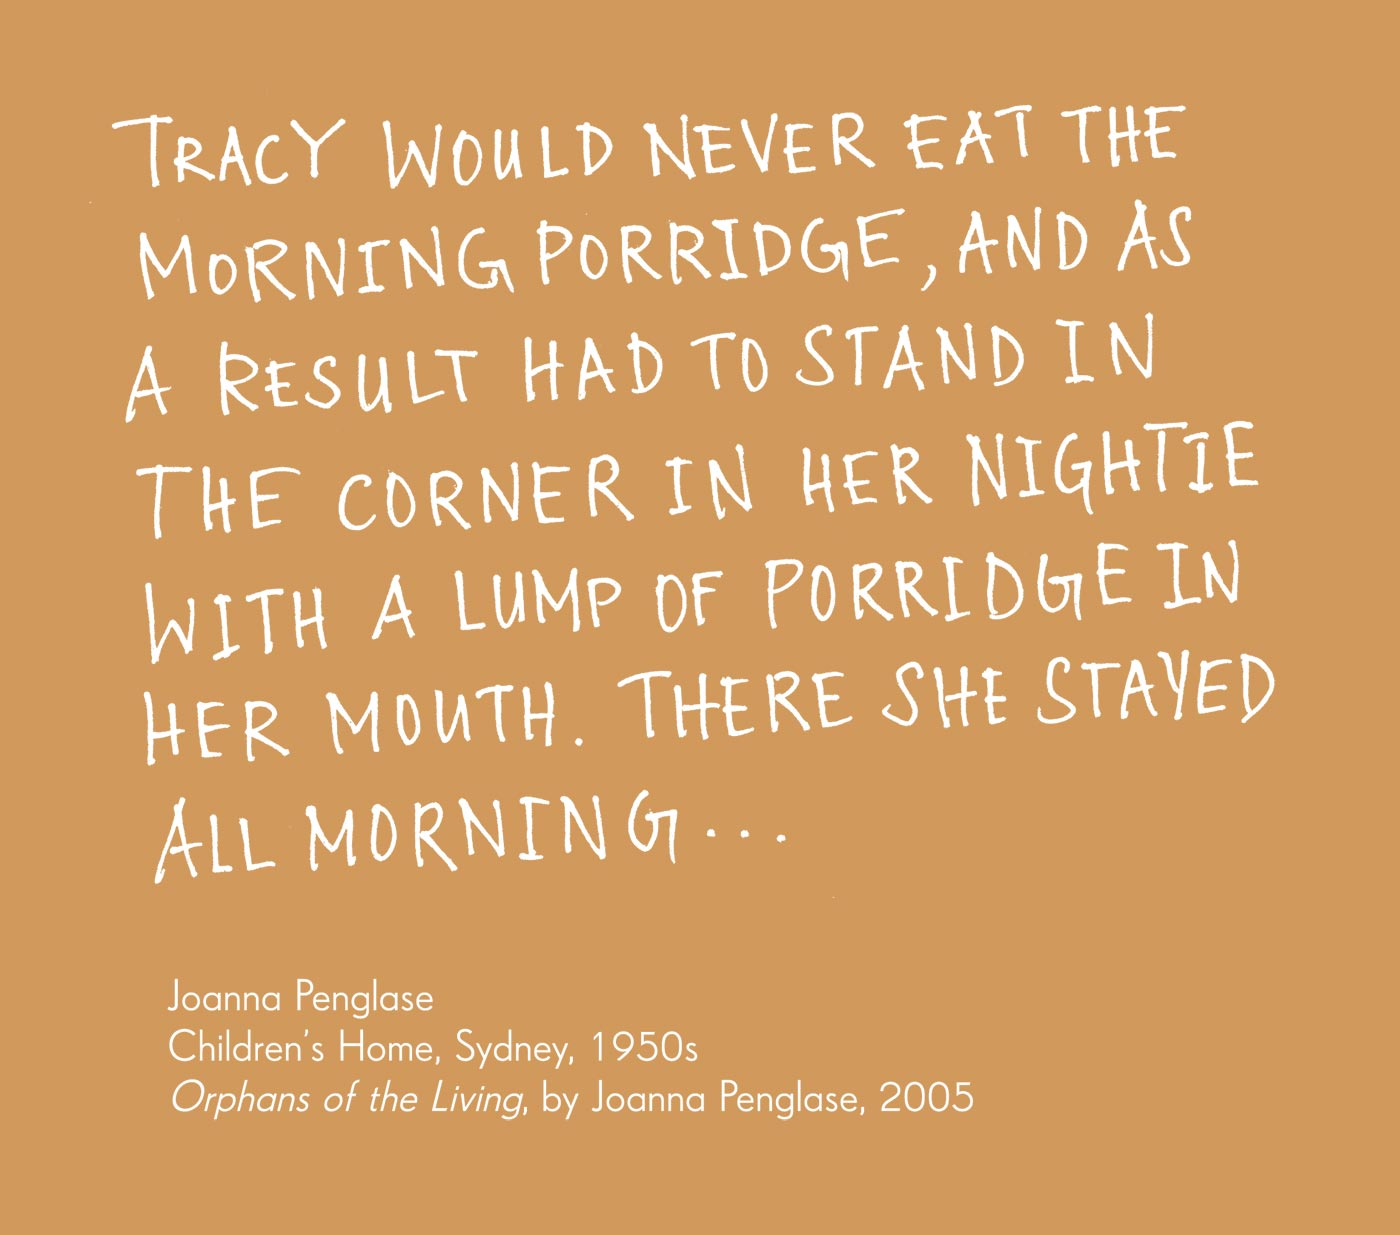 Exhibition graphic panel that reads: 'Tracy would never eat the morning porridge, and as a result had to stand in the corner in her nightie with a lump of porridge in her mouth. There she stayed all morning …' attributed to 'Joanna Penglase, Children's Home, Sydney, 1950s, 'Orphans of the Living', by Joanna Penglase, 2005'. - click to view larger image